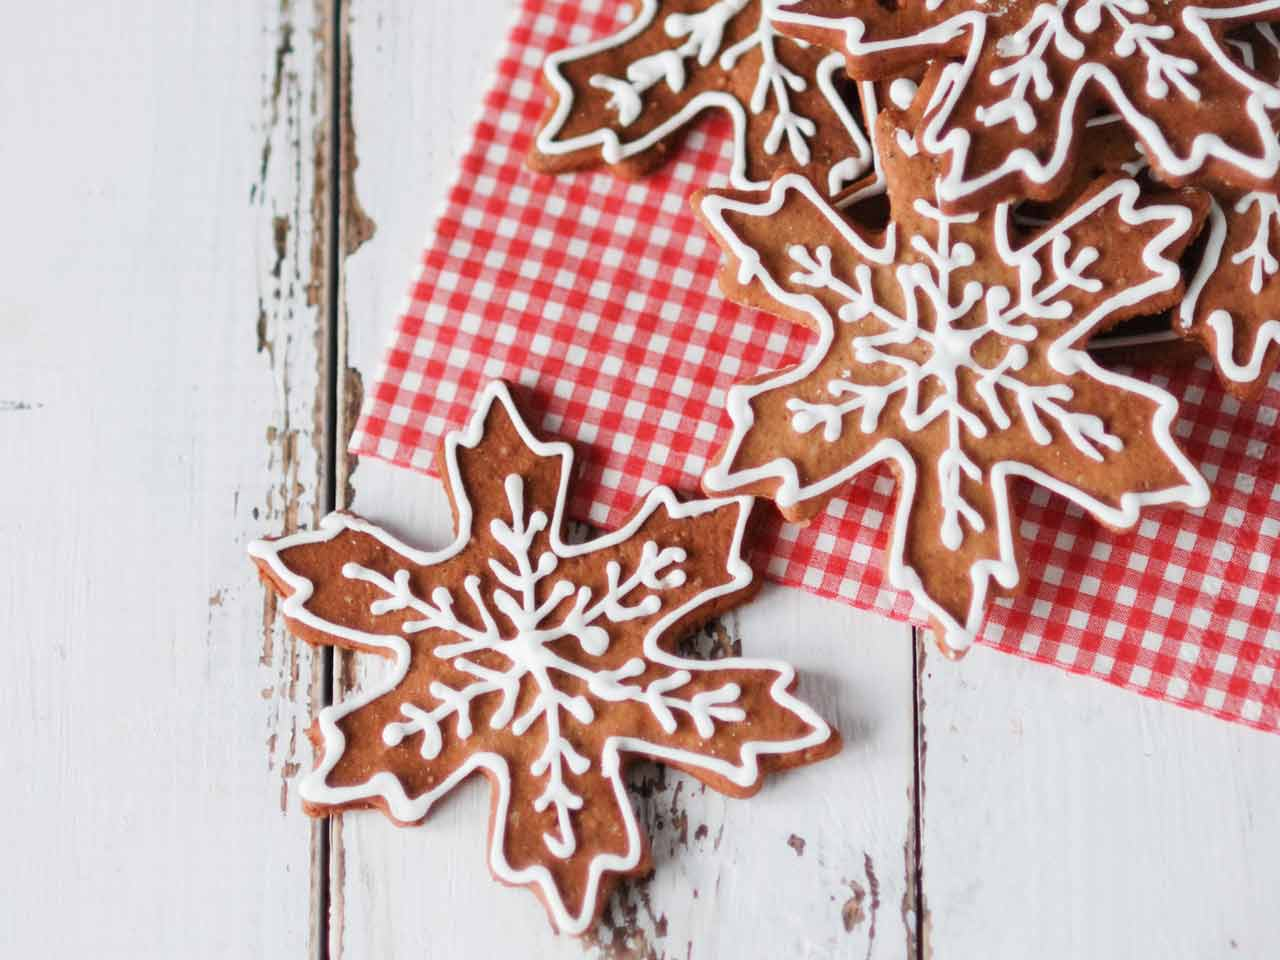 Pepparkakor, Scandinavian spiced Christmas biscuits